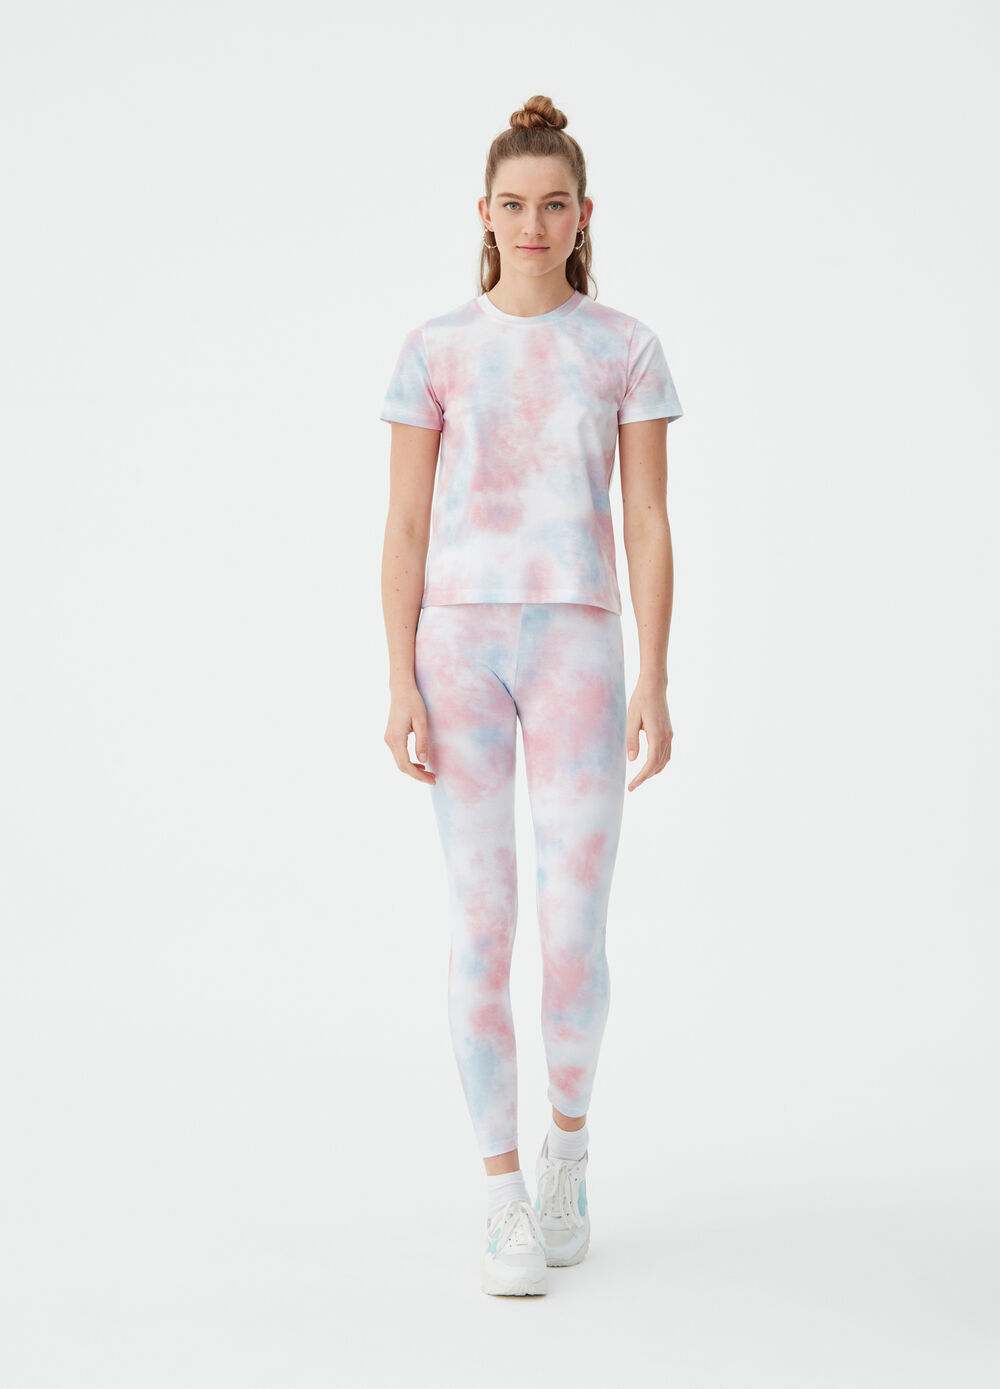 Multicoloured shaded-effect T-shirt